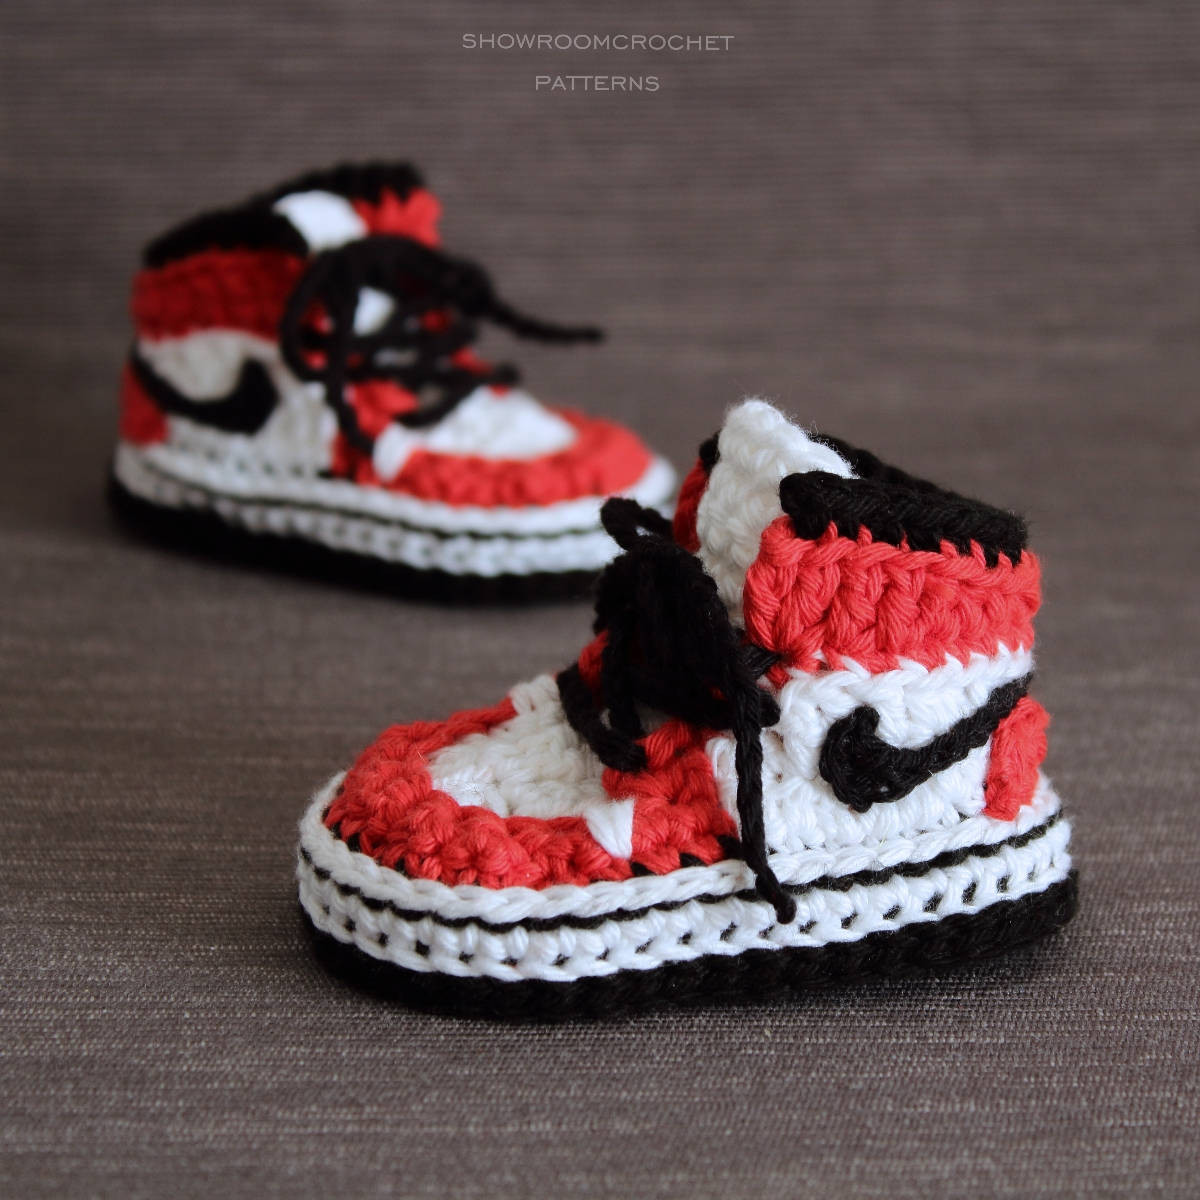 Crochet Sneakers Luxury Crochet Pattern Air Jordans Style Baby Sneakers Of Gorgeous 50 Pics Crochet Sneakers